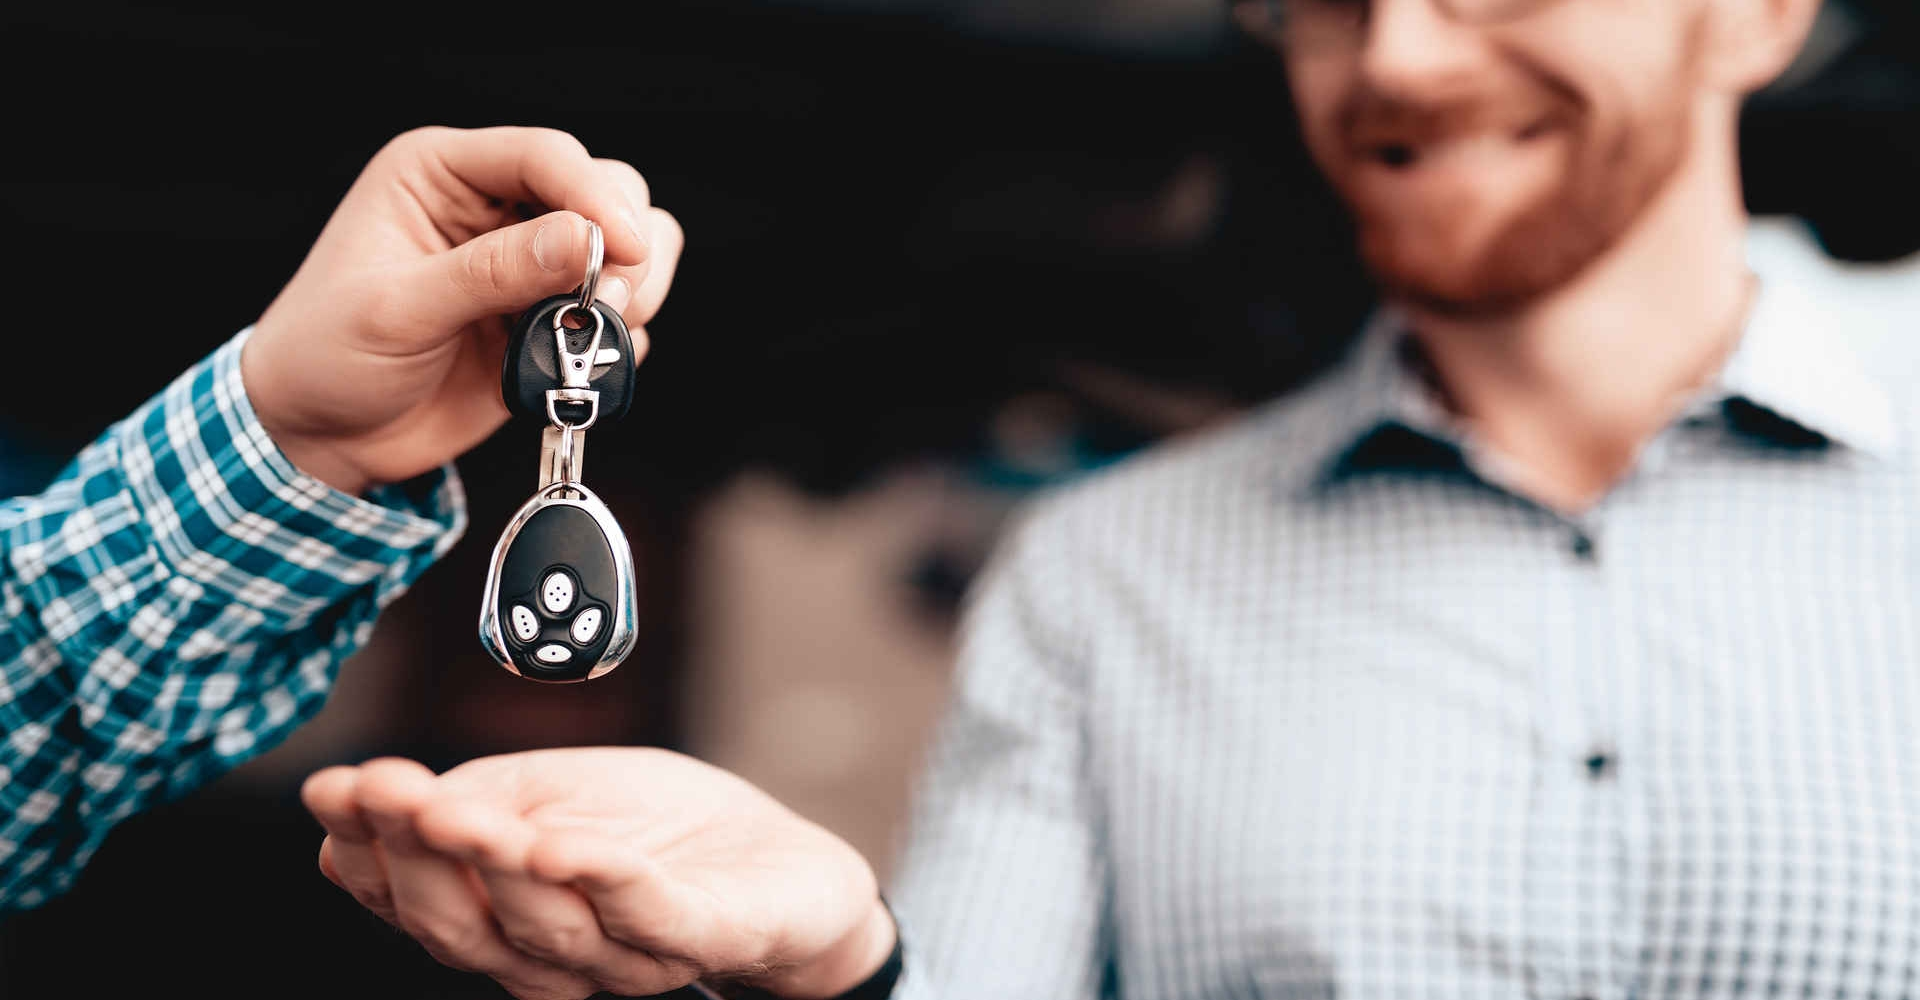 Dealer Gives Keys To The Car Owner